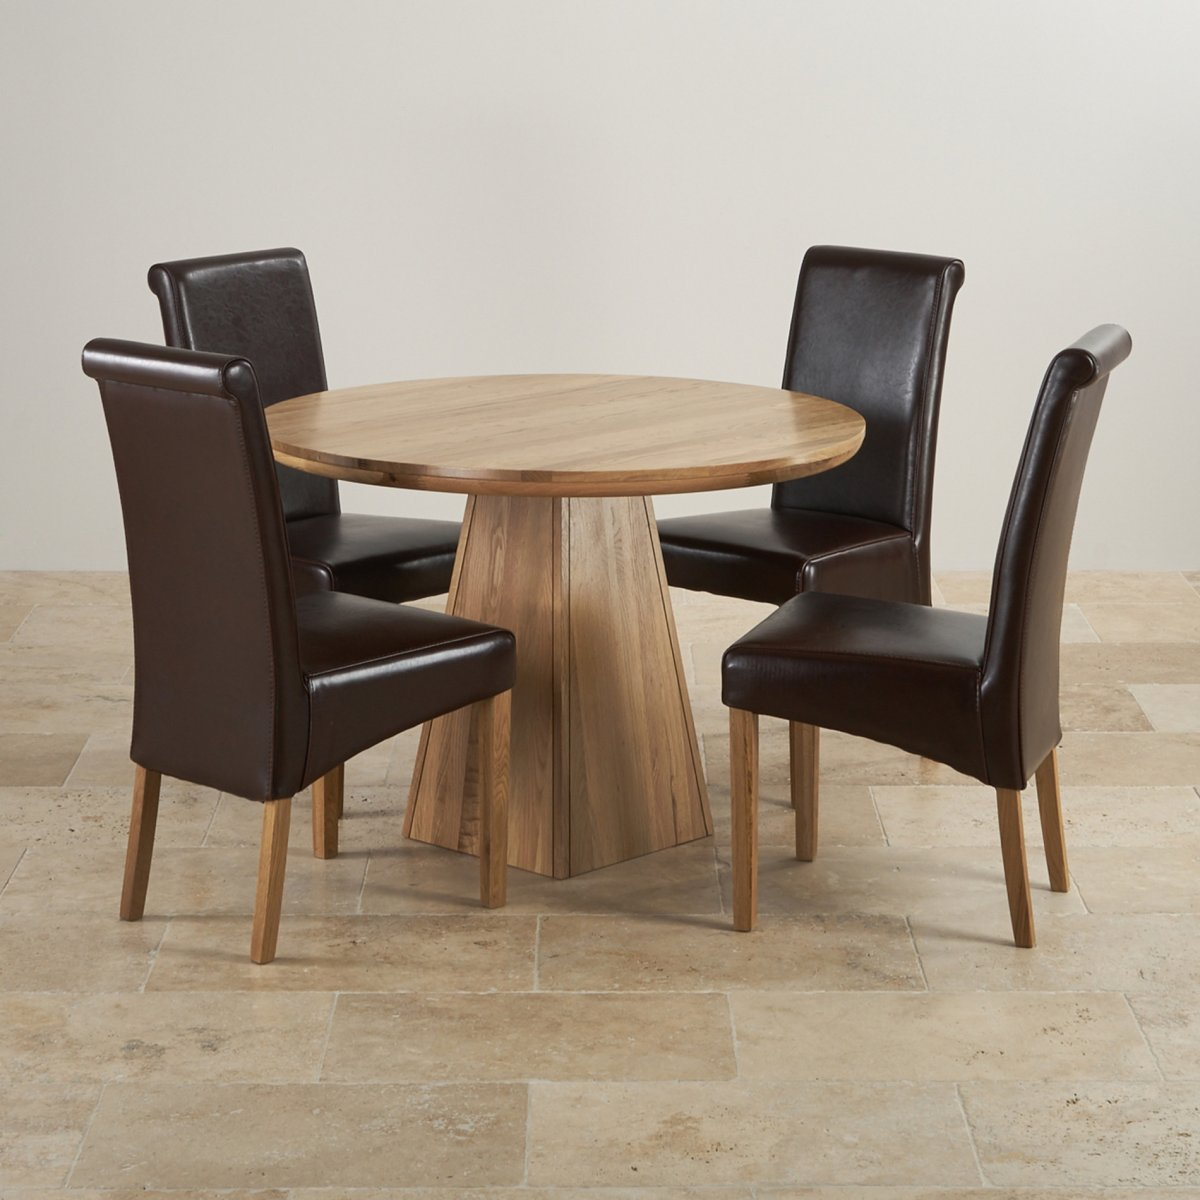 provence solid oak 3ft 7 dining table with 4 brown chairs. Black Bedroom Furniture Sets. Home Design Ideas